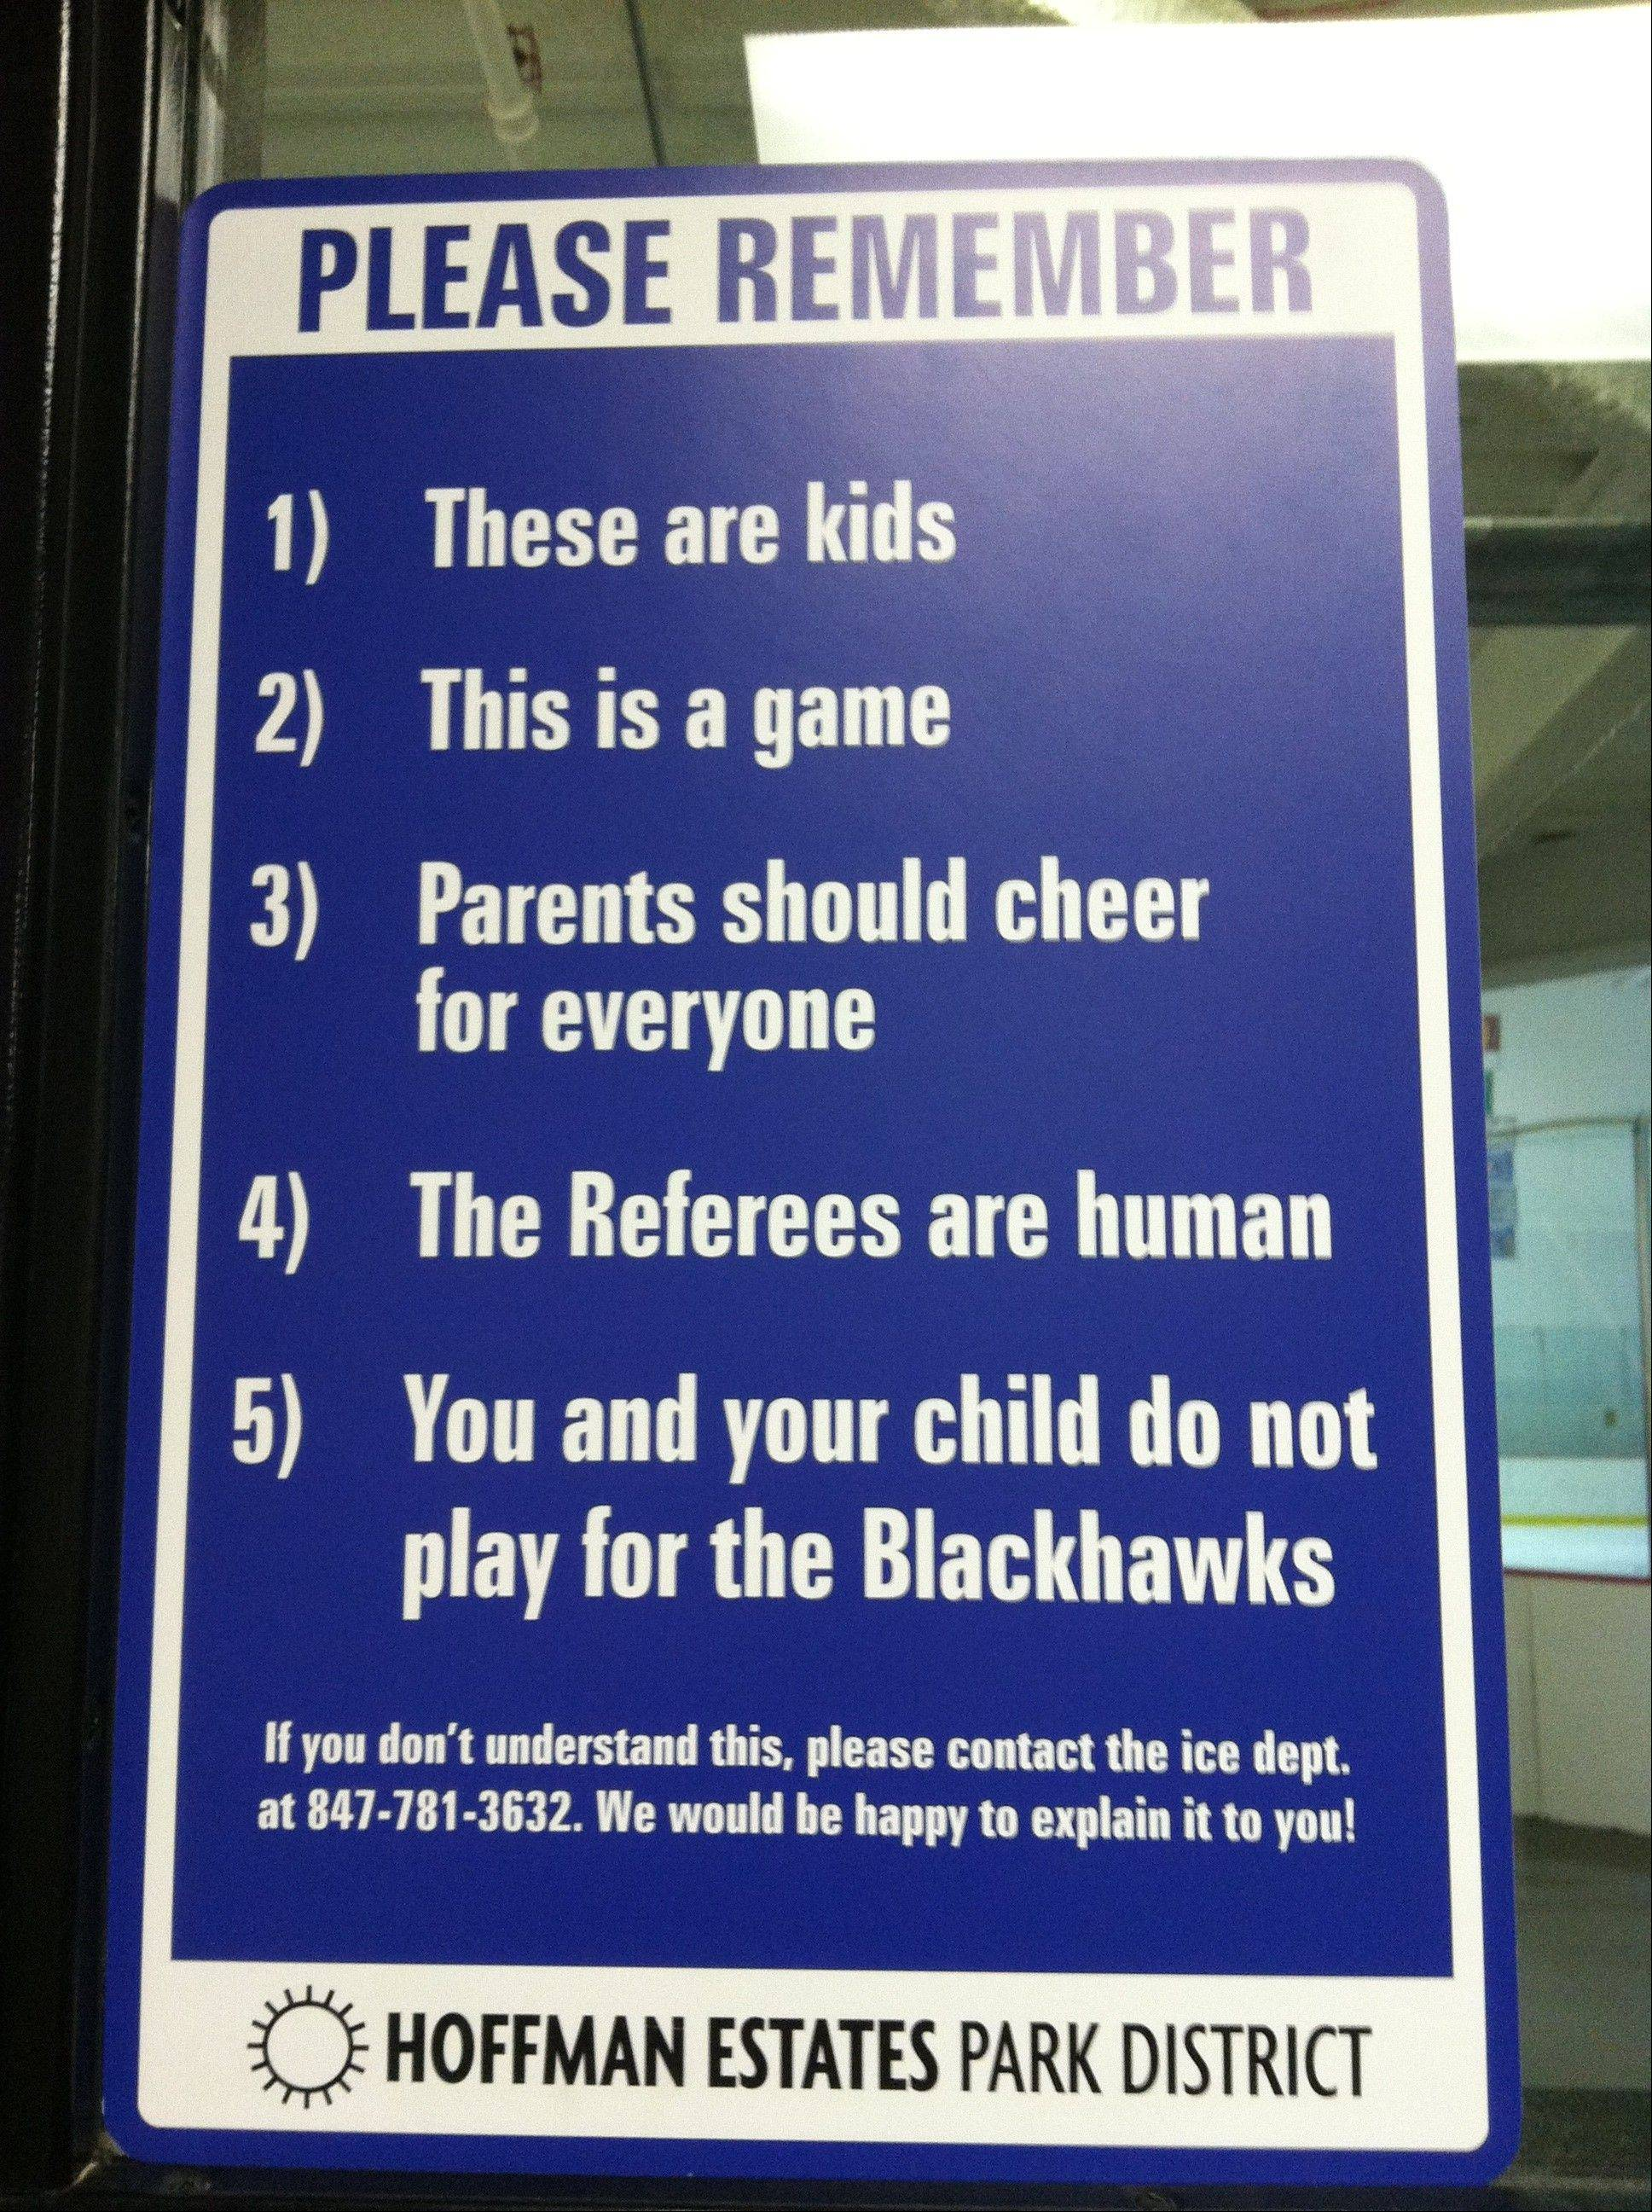 The Hoffman Estates Park District is getting a lot of attention for this sign, which was posted outside its ice rinks to remind parents about good sportsmanship.